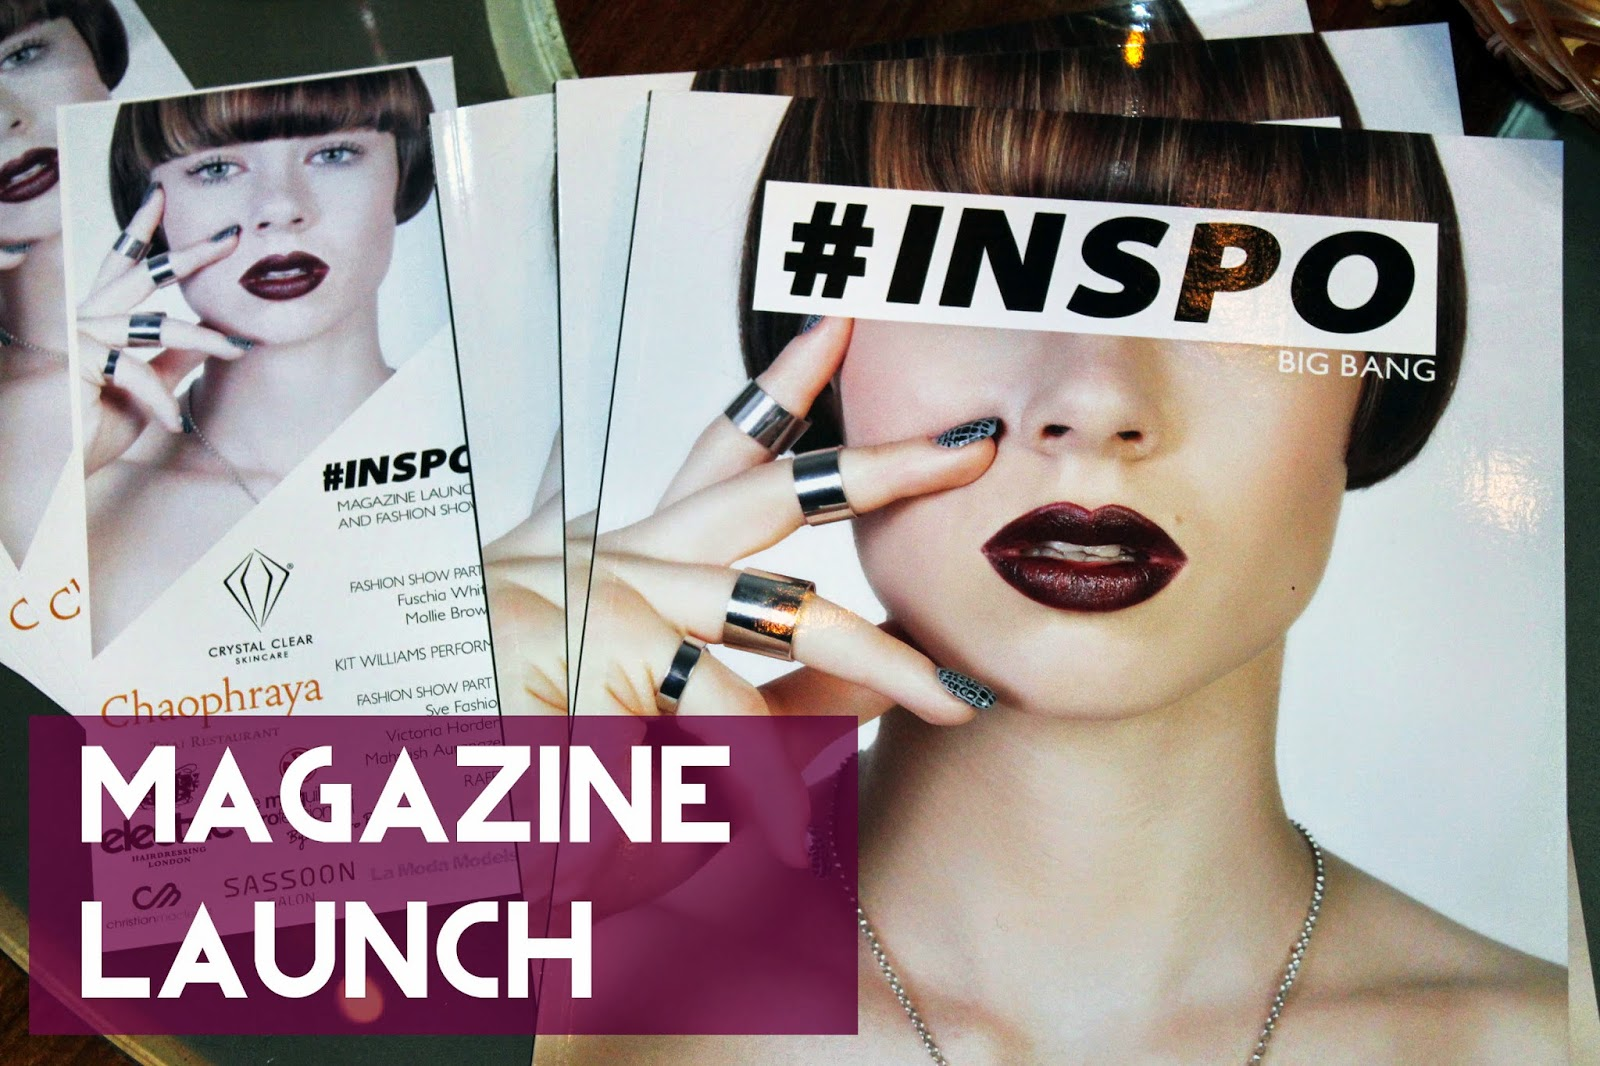 #inspo magazine launch party liverpool